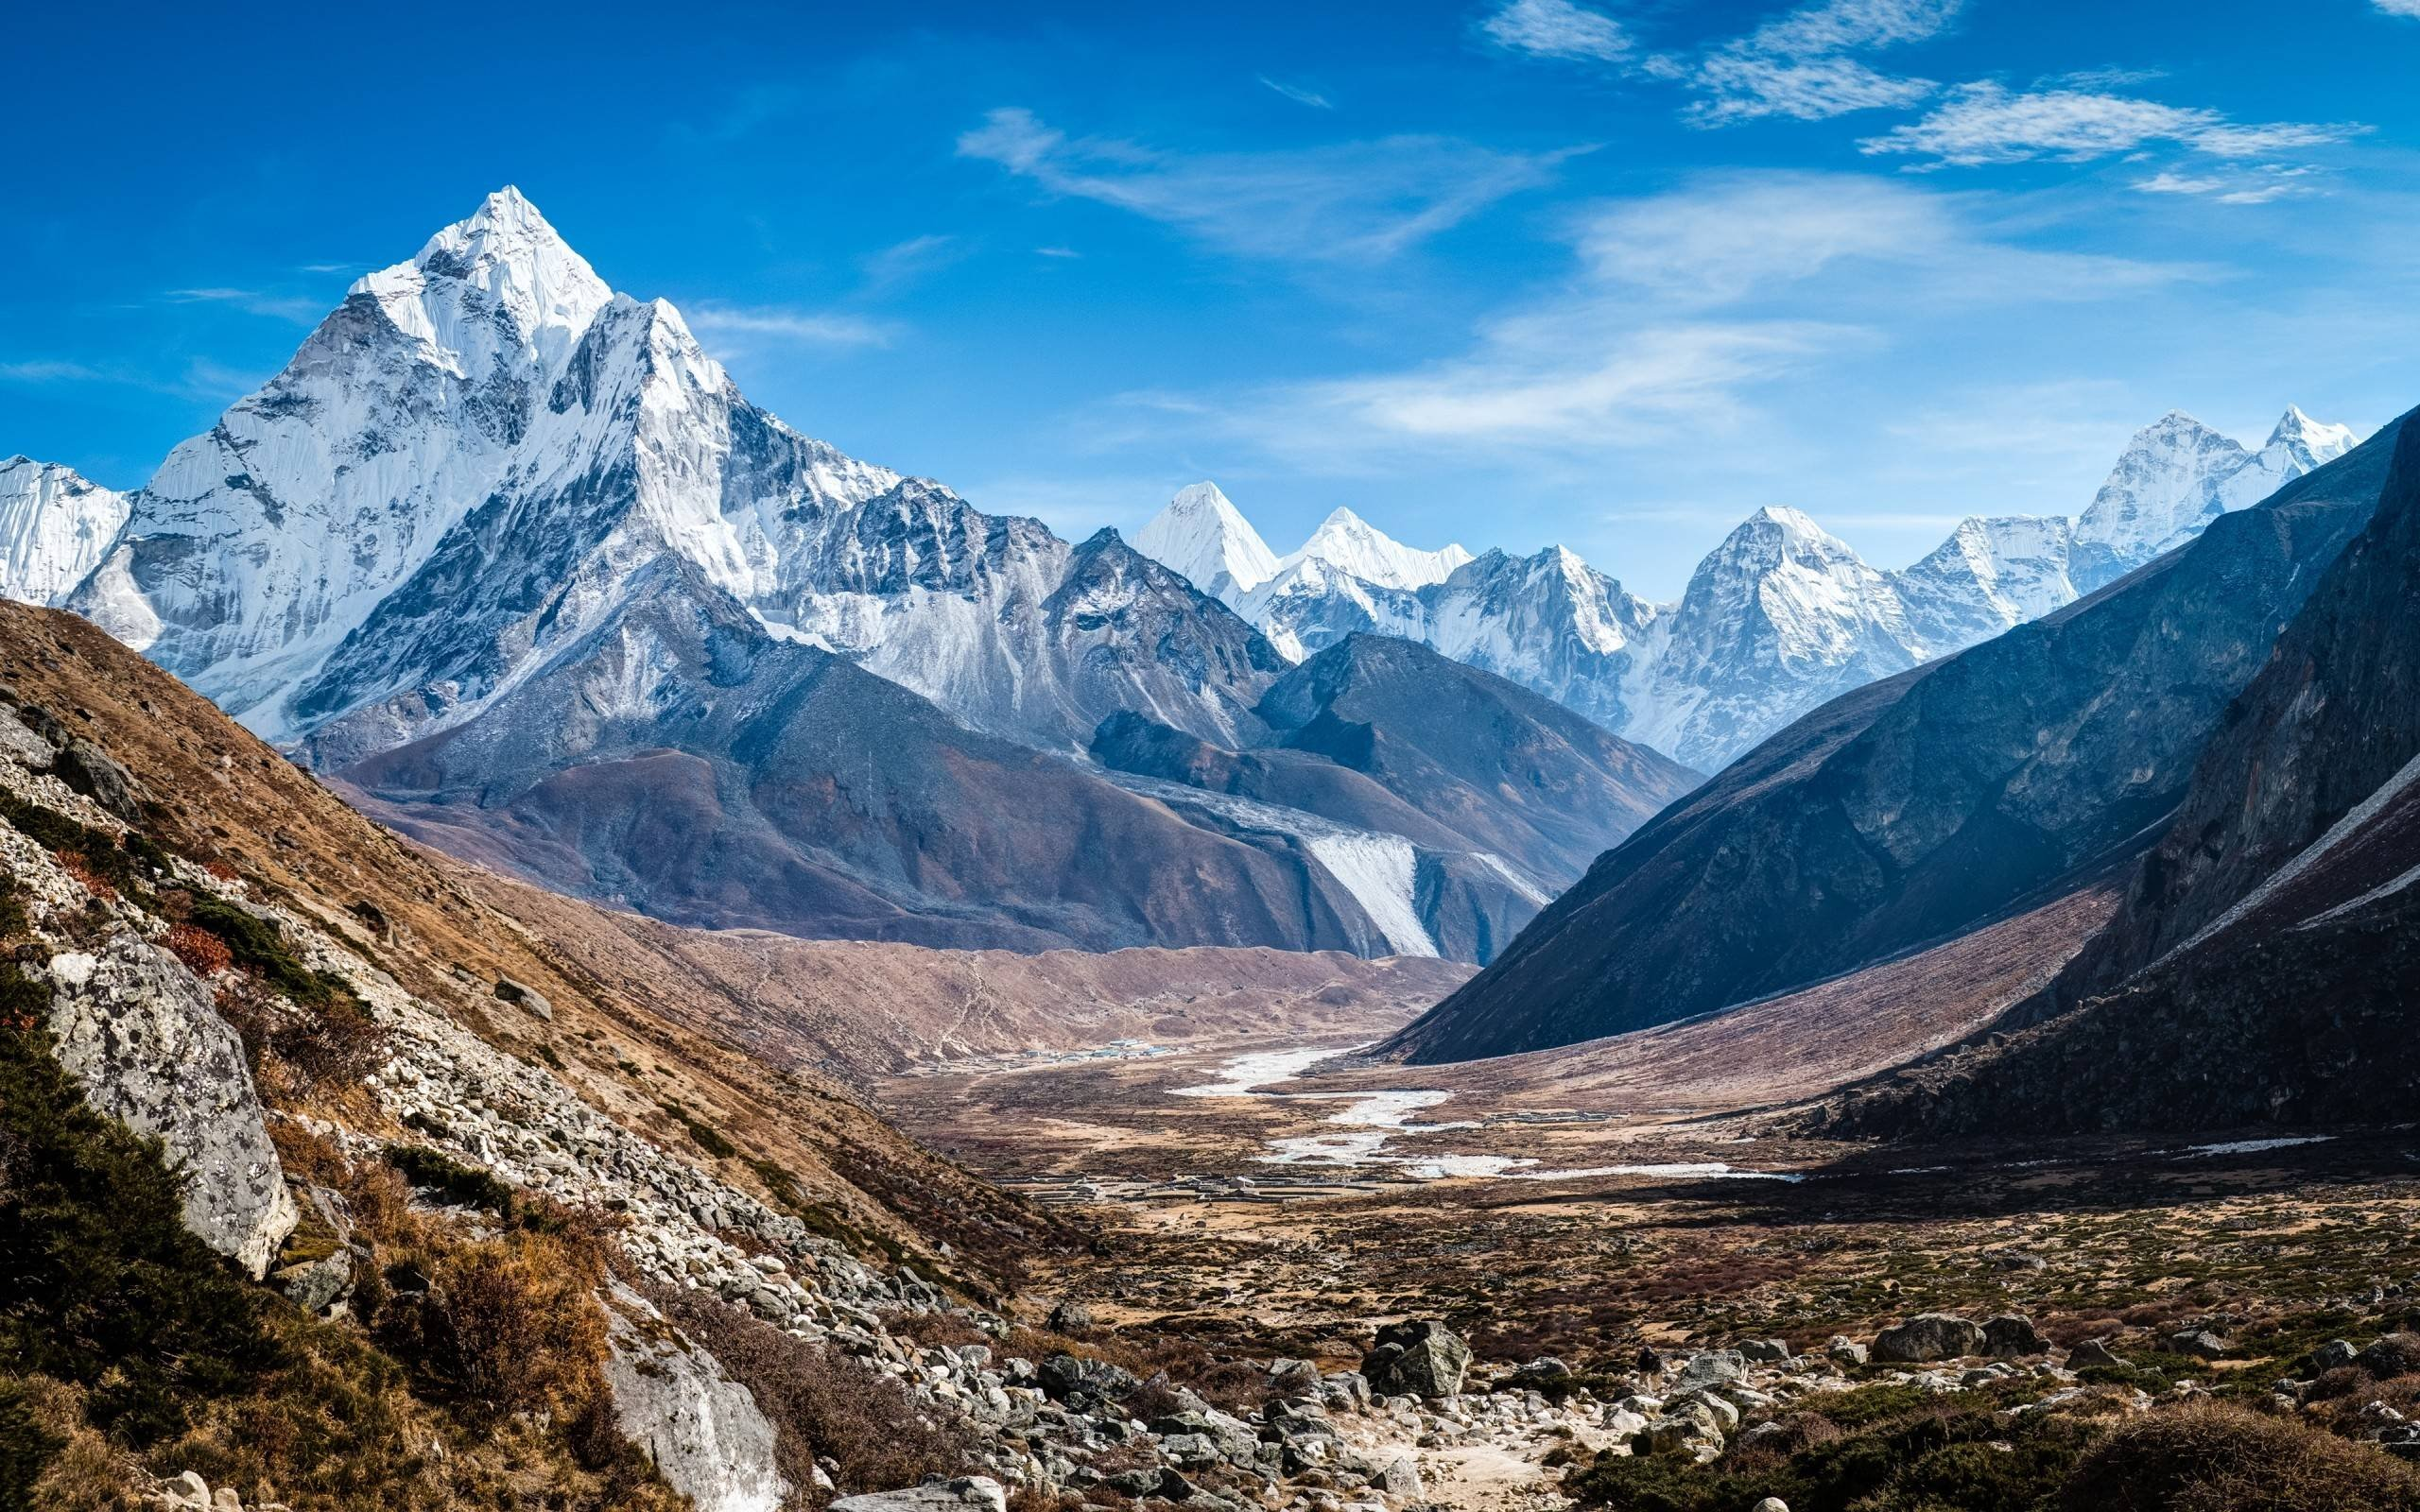 Nepal Wallpapers 4k For Your Phone And Desktop Screen